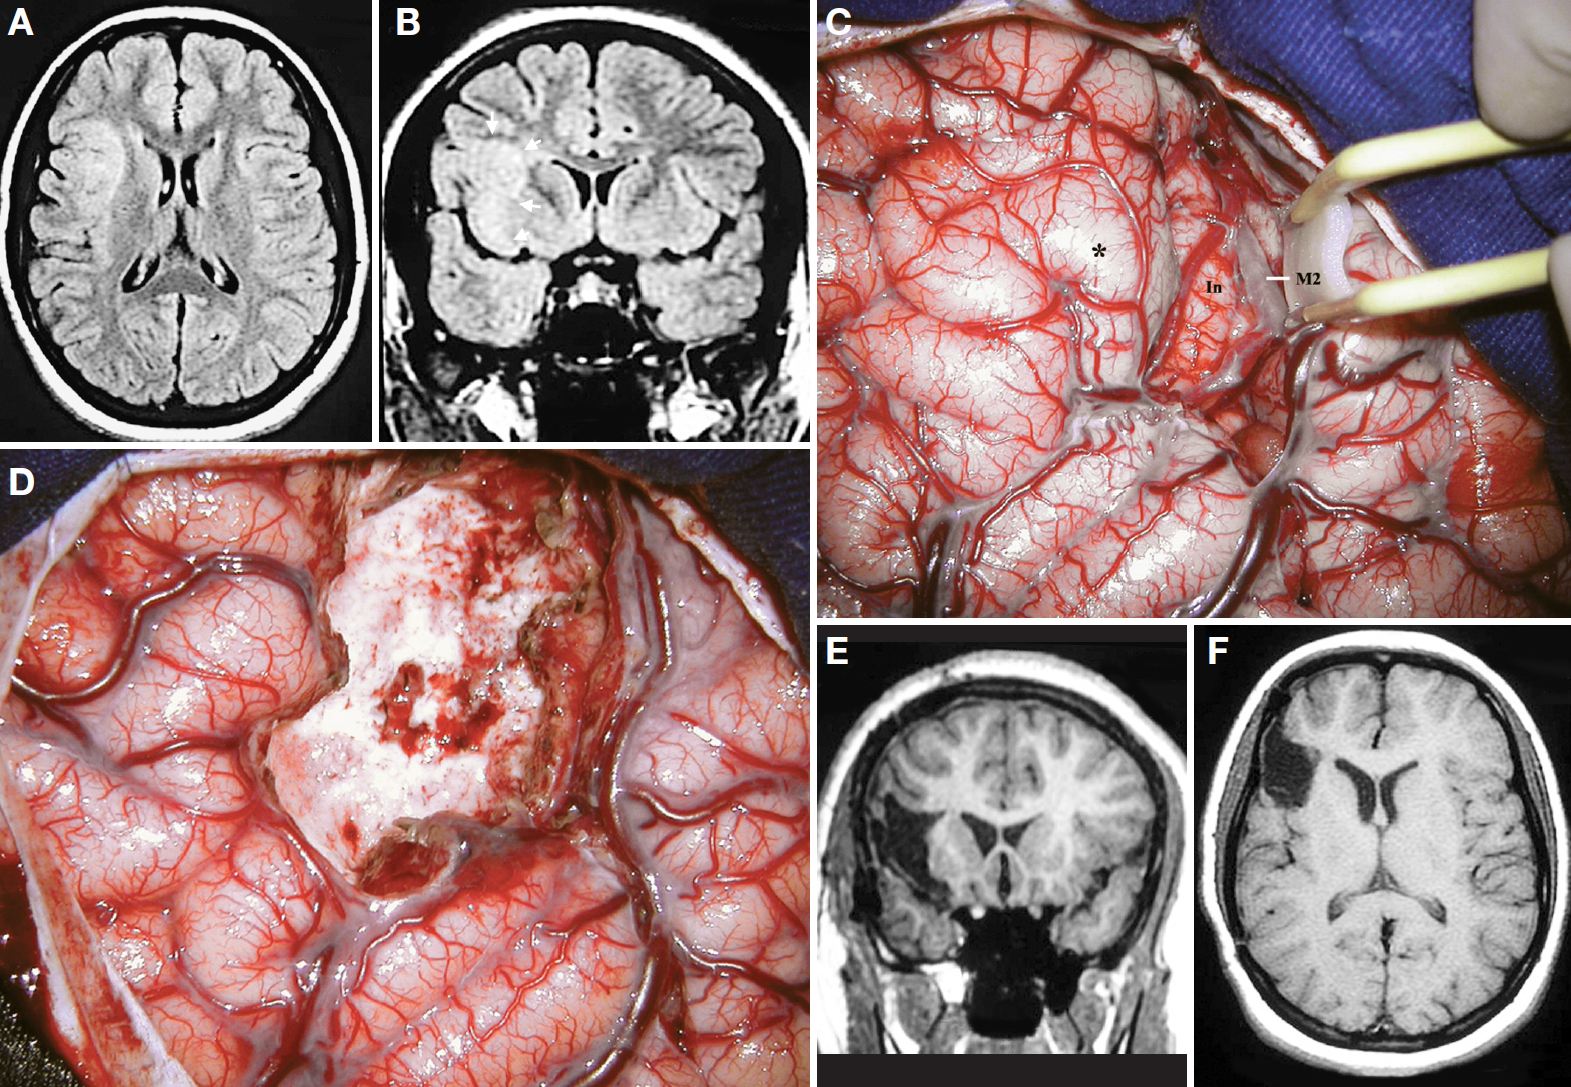 Figure 18. A, axial MRI scan. B, coronal MRI scan at the anterior part of the insula. Note that the superolateral insular cleft on the right side is lacking. Arrows indicate the cortical dysplasia. C, surgical exposure after right pterional craniotomy, dural opening, and sylvian fissure splitting. M2, insular segment of the MCA; In, insula. Asterisk, cortical dysplasia. D, intraoperative photograph after the removal of the cortical dysplasia. E, postoperative coronal MRI scan showing the resection of the cortical dysplasia. F, postoperative axial MRI scan. (Images courtesy of AL Rhoton, Jr.)